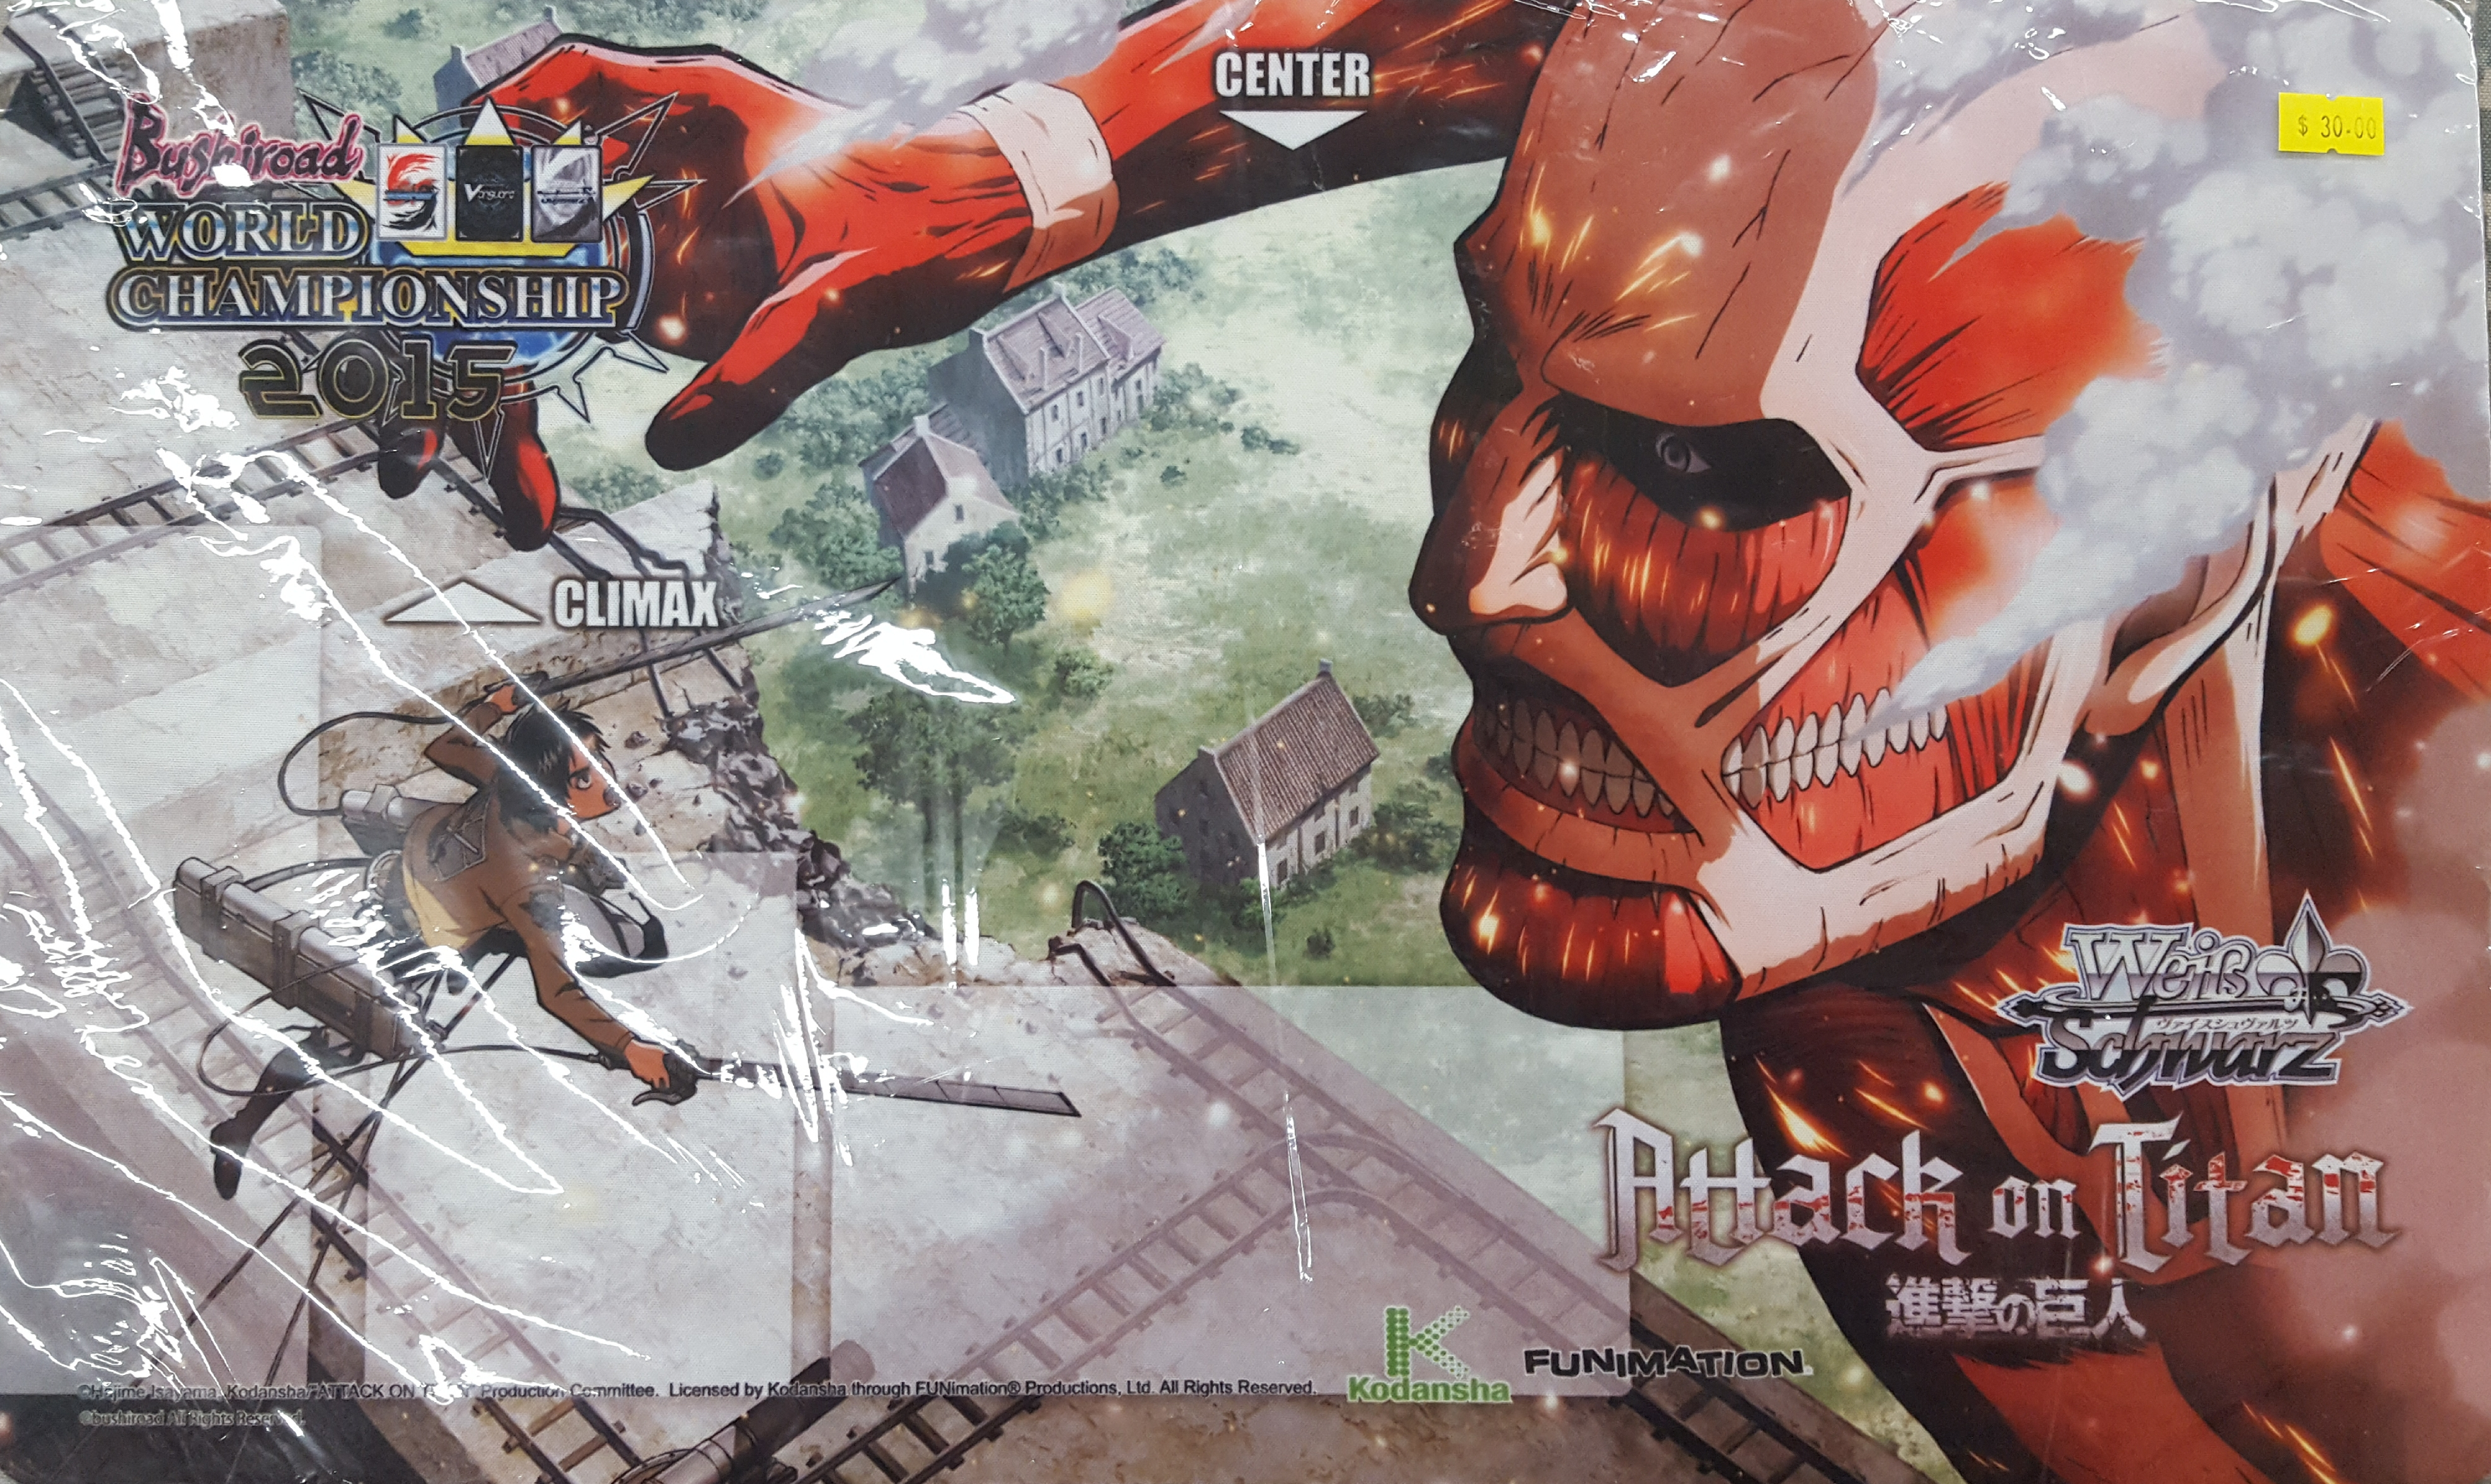 Weiss Schwarz Attack on Titan World Championship 2015 Playmat